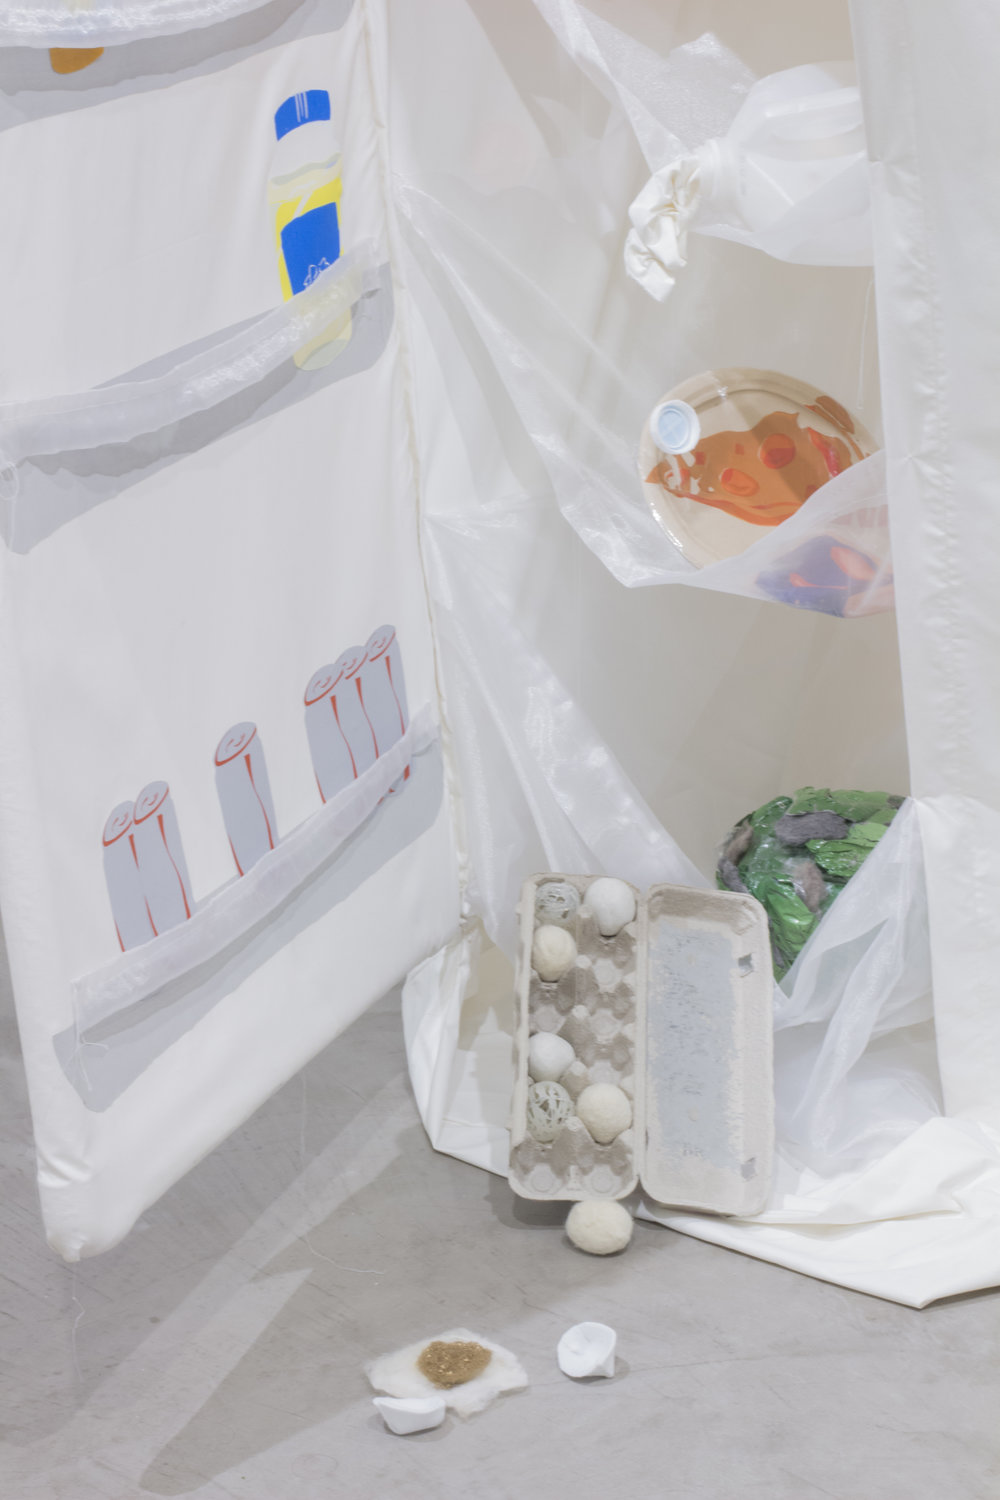 """Purging"" (detail), 2016, Screen-printed fabric, cardboard, milk jug, clay, felted wool, ink thread, pvc, monofilament, fridge light, Dimensions variable"